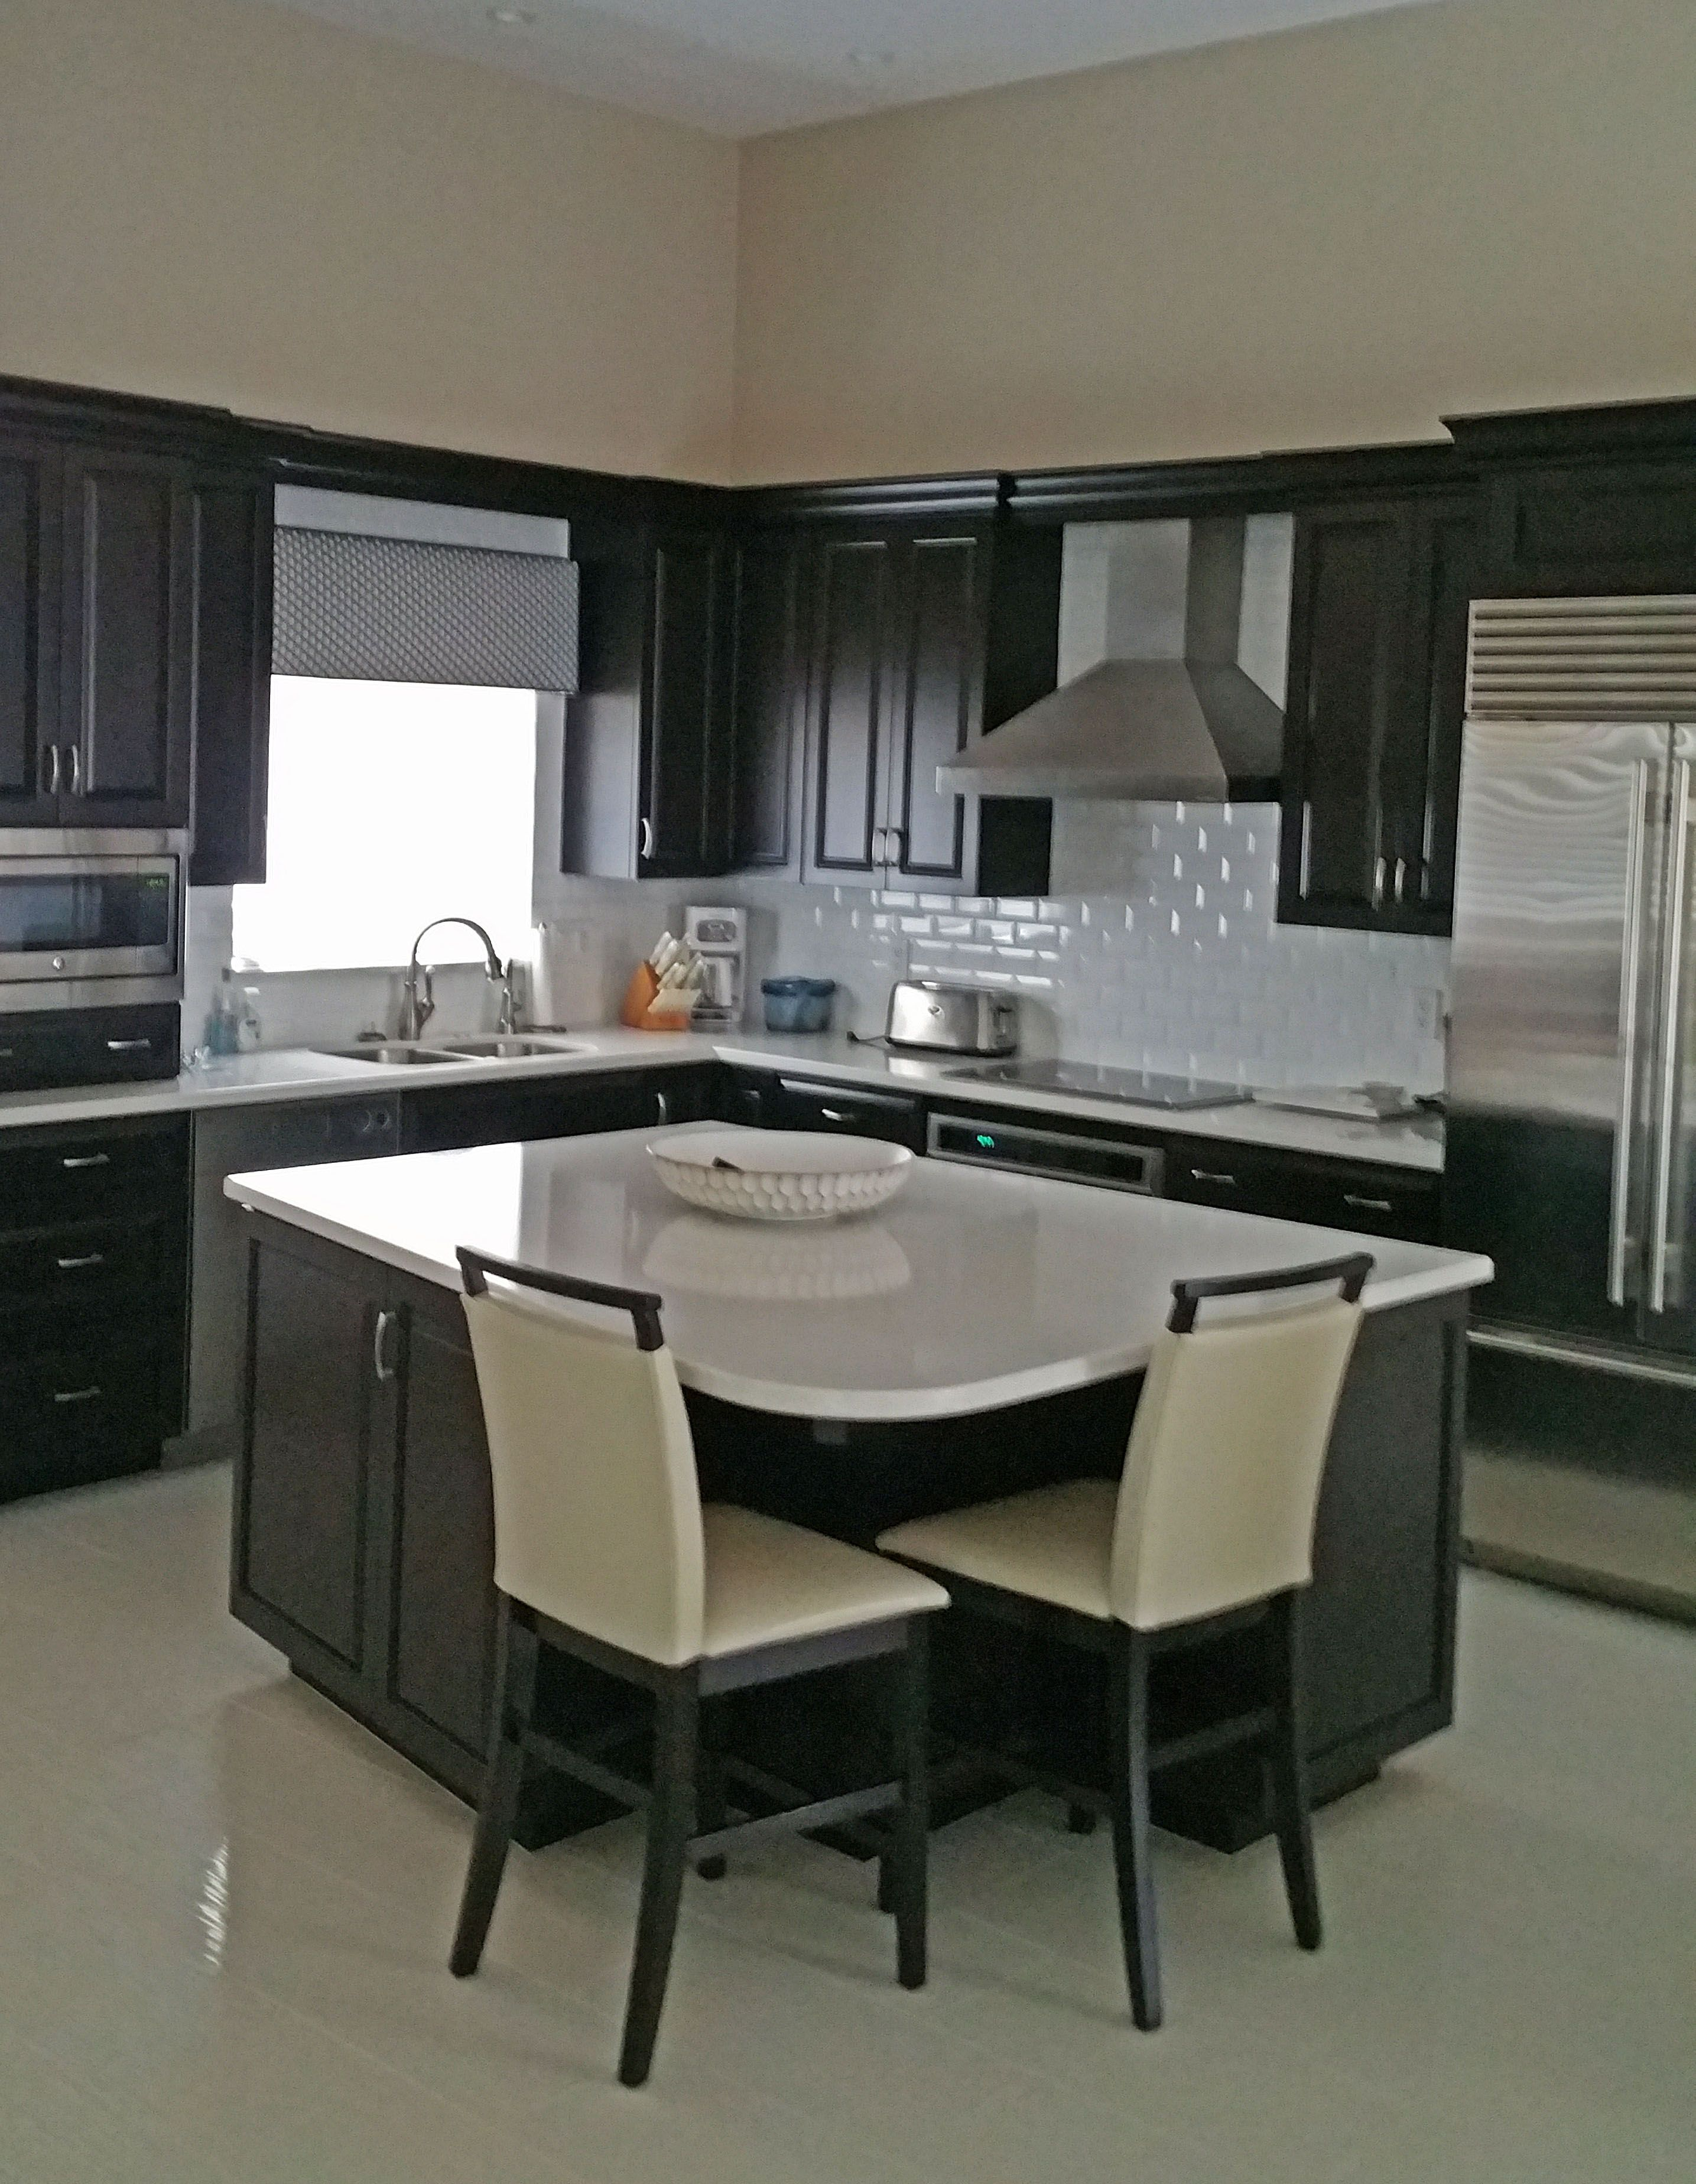 Remodeled Total Casita Built In 1980 S Kitchen Is Transitional Using Custom Wenge Cabinets Engineered Ston Engineered Stone Countertops Kitchen Remodel Home